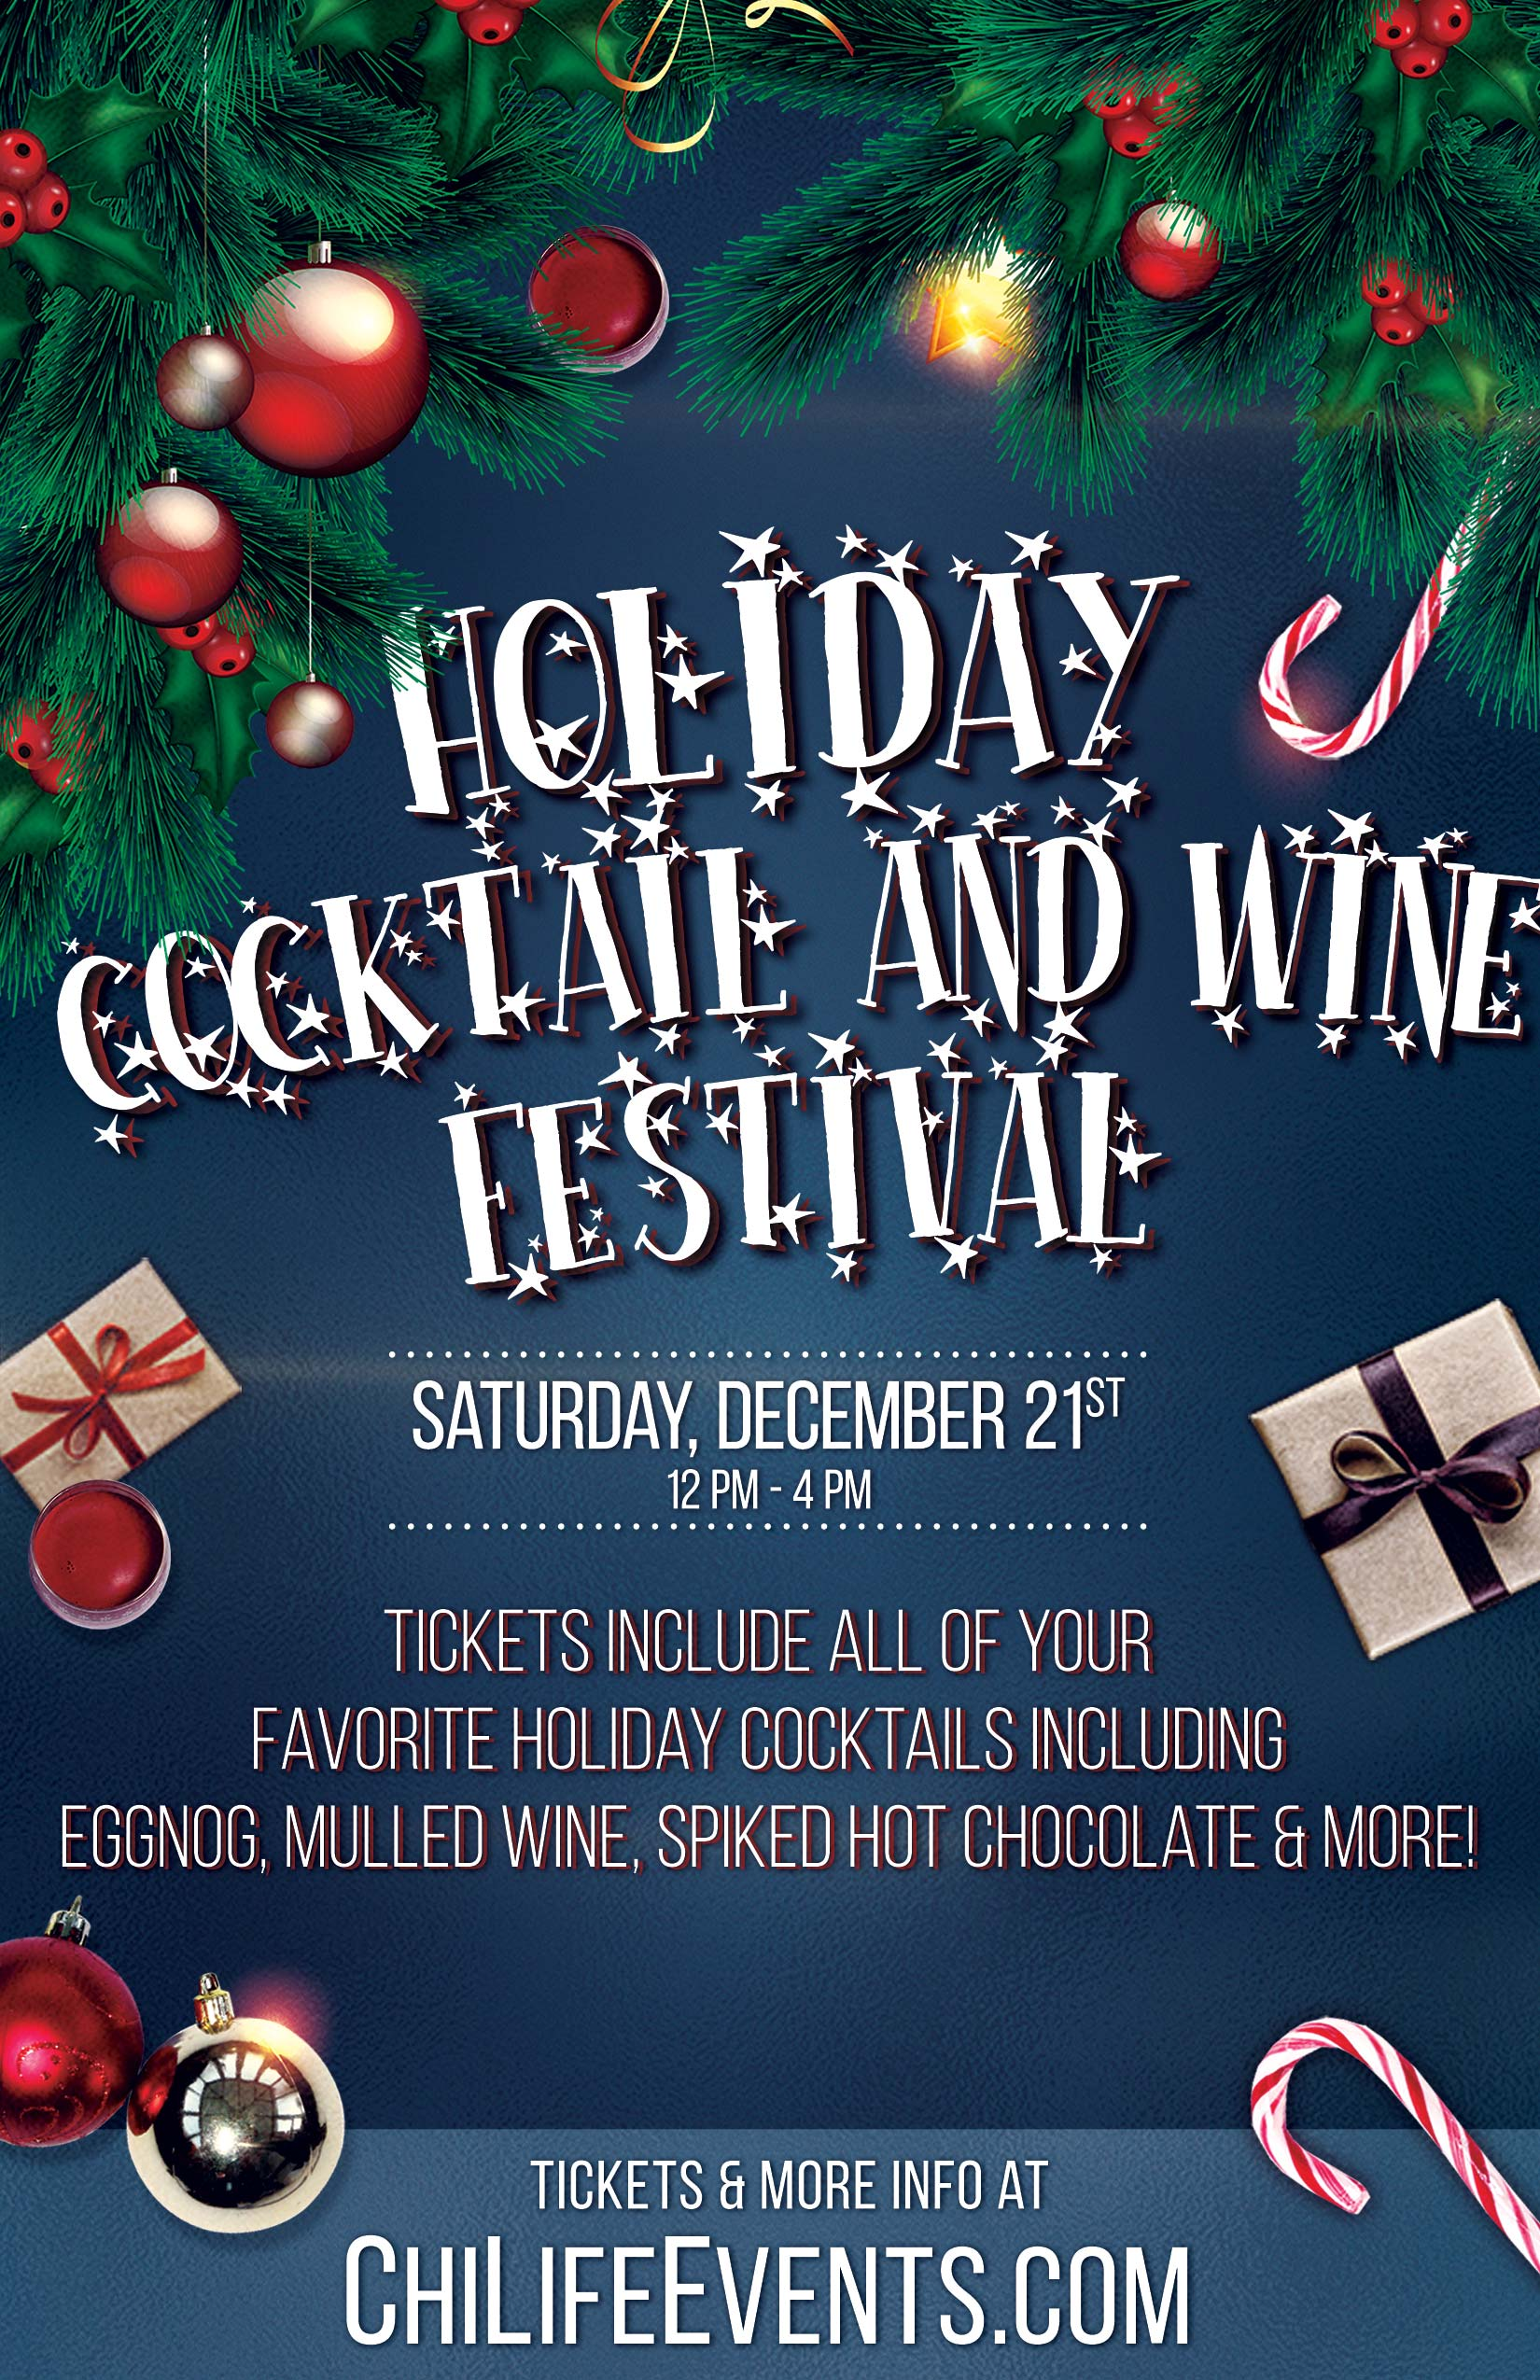 Christmas Events Chicago 2019 2019 Holiday Cocktail & Wine Festival   A Chicago Holiday Cocktail